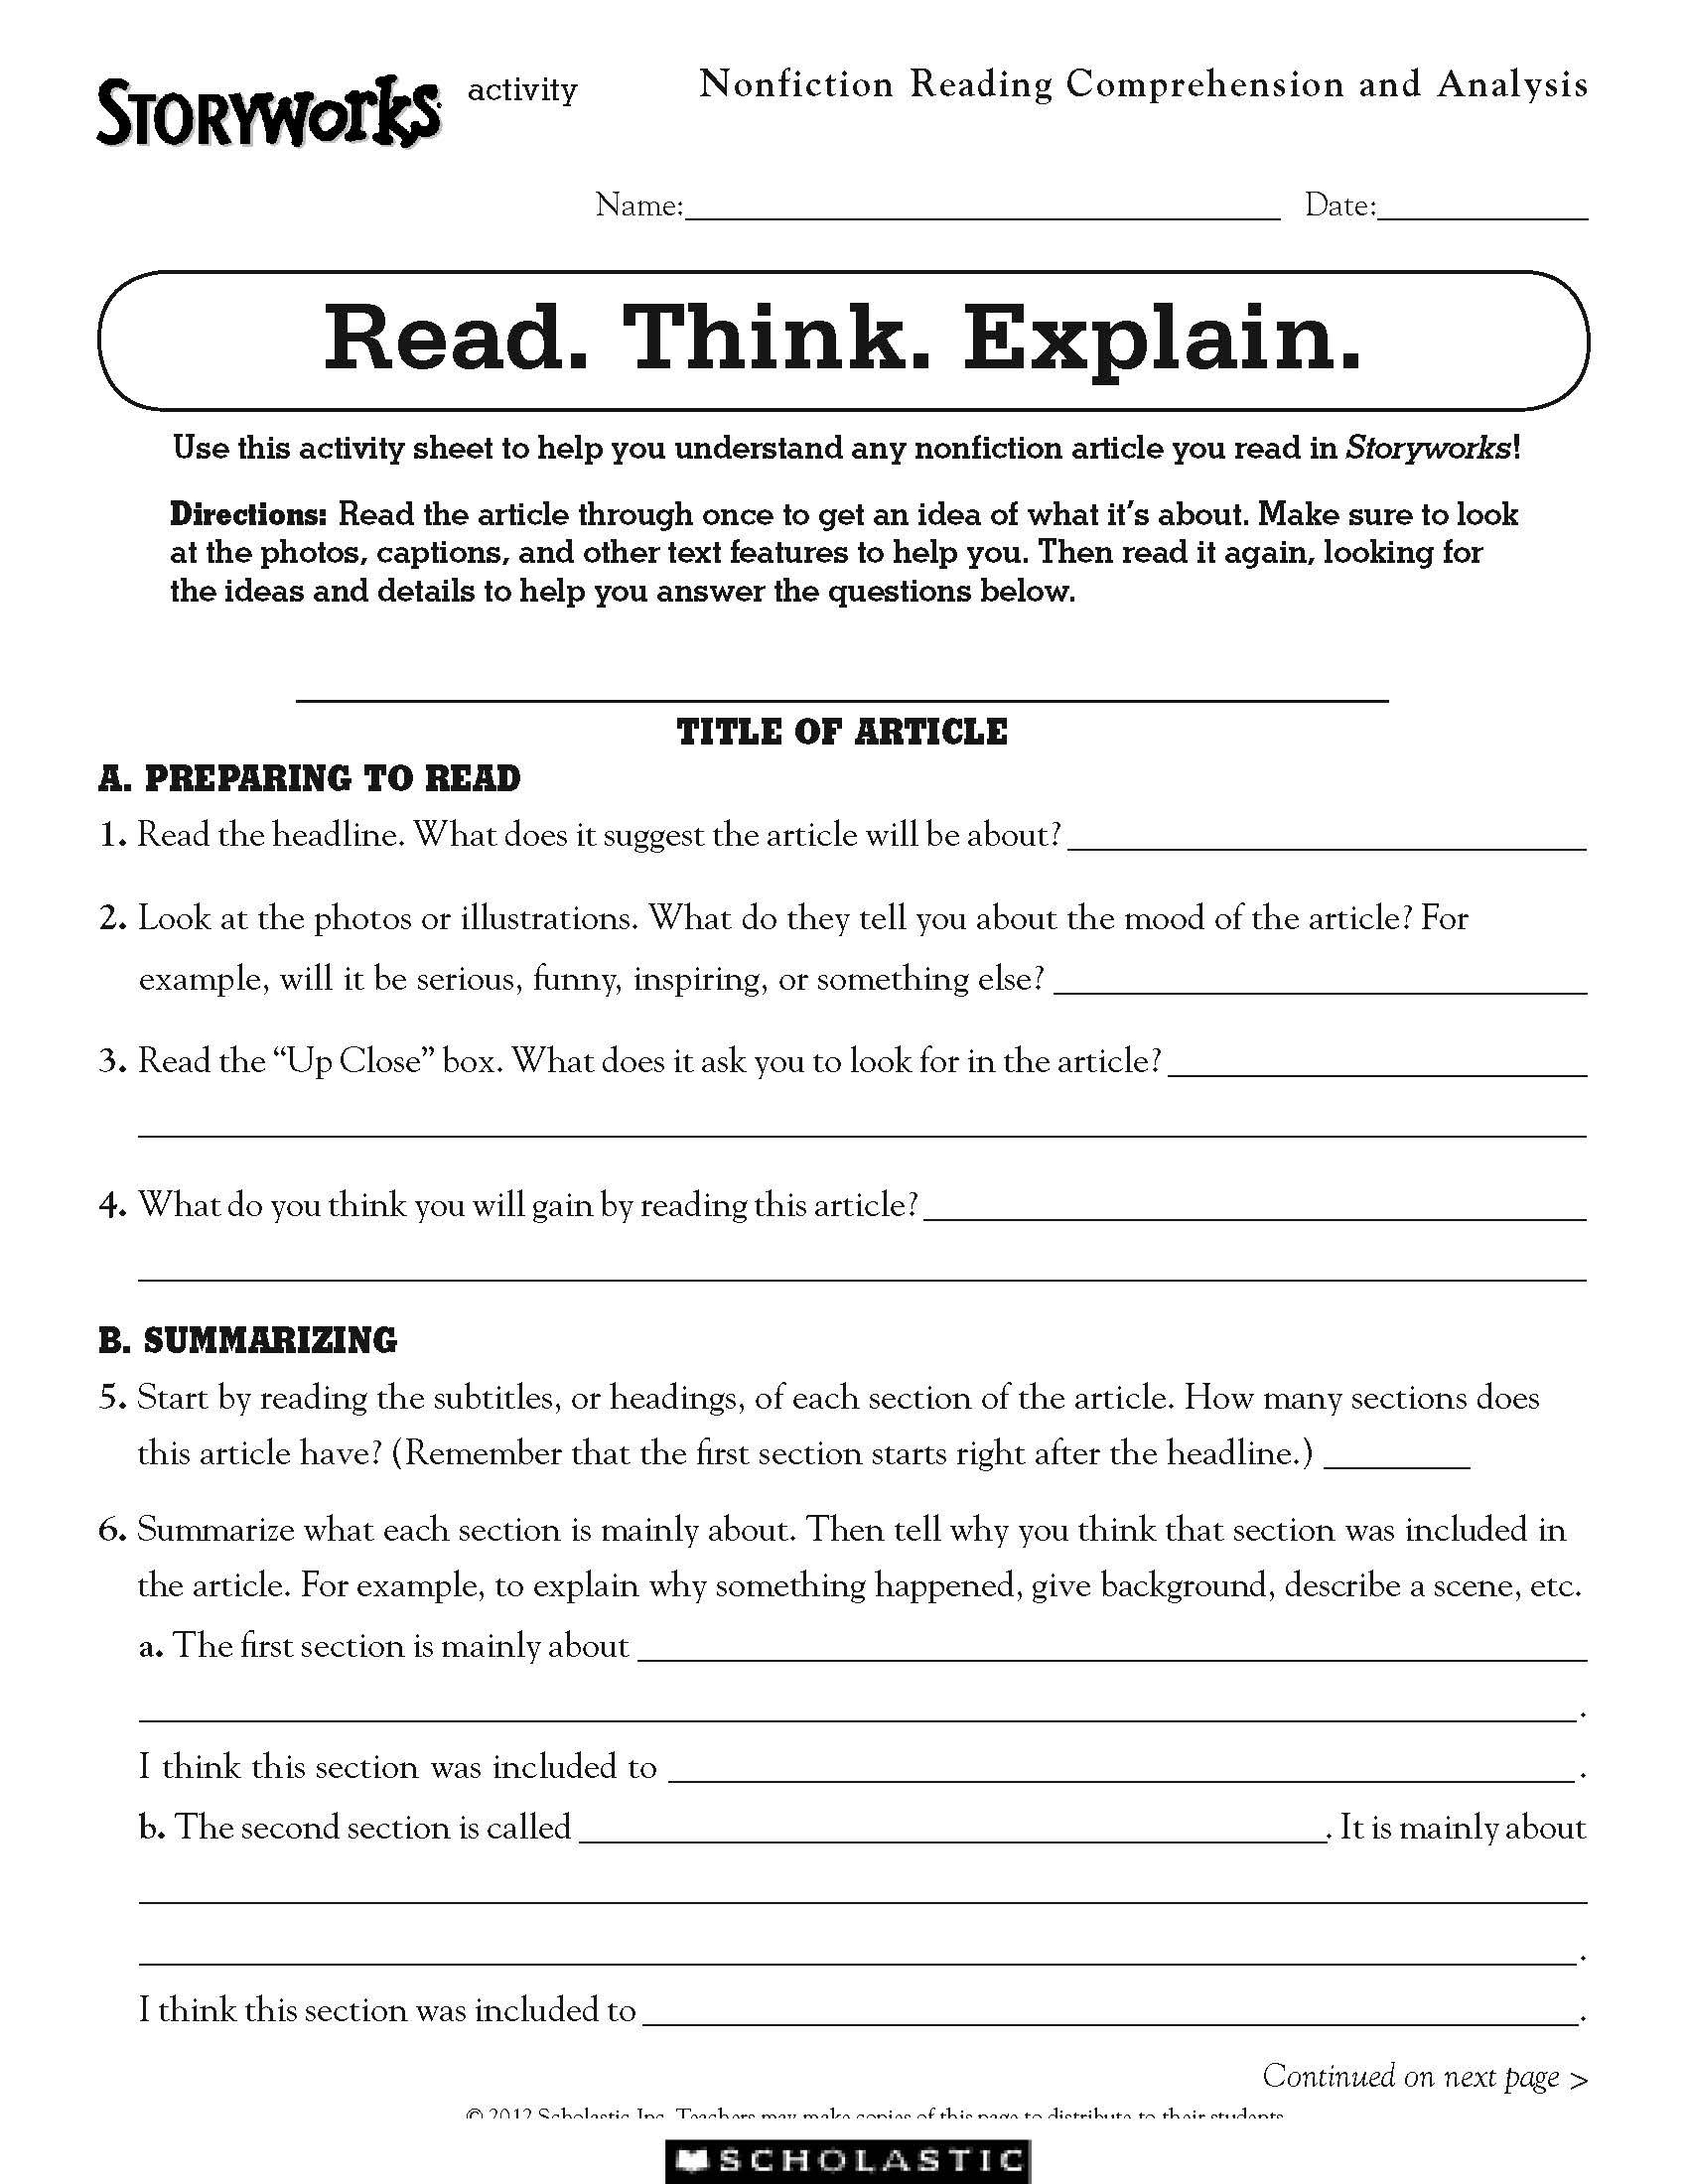 Activity Library Free Activities Reading Comprehension